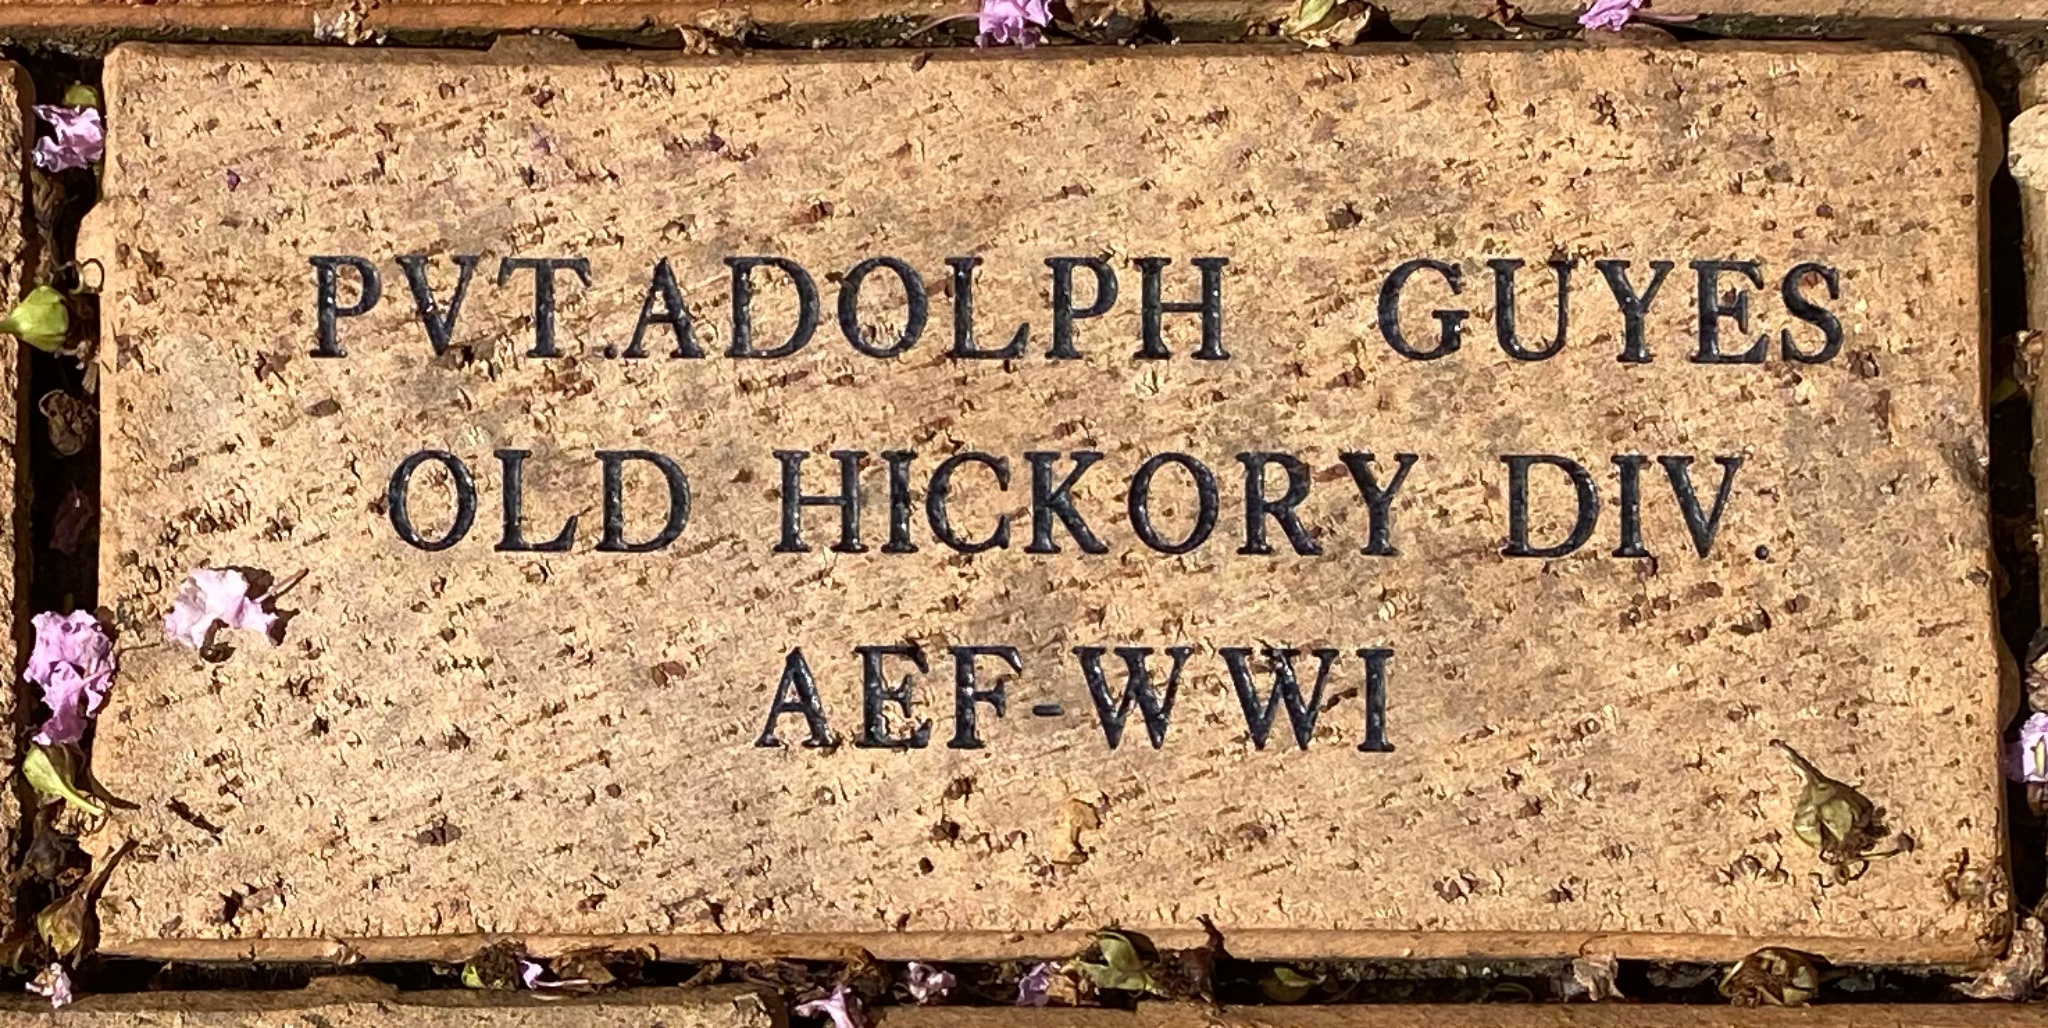 PVT. ADOLPH GUYES OLD HICKORY DIV. AEF – WWI